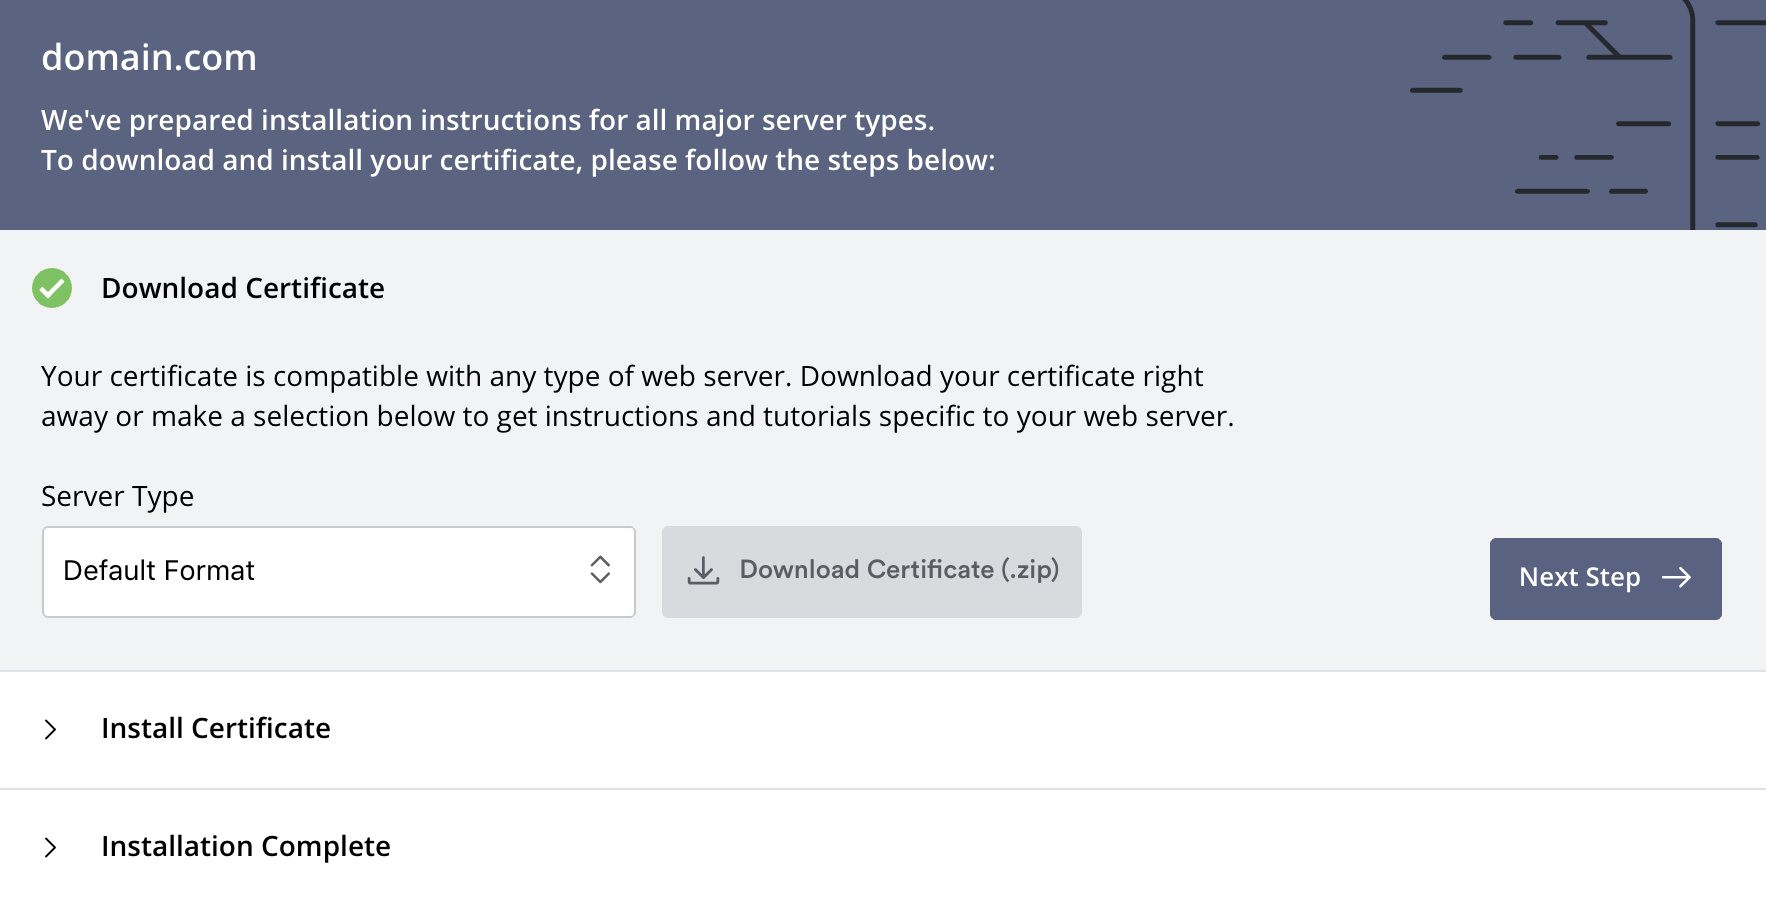 Install Certificate: Download Certificate